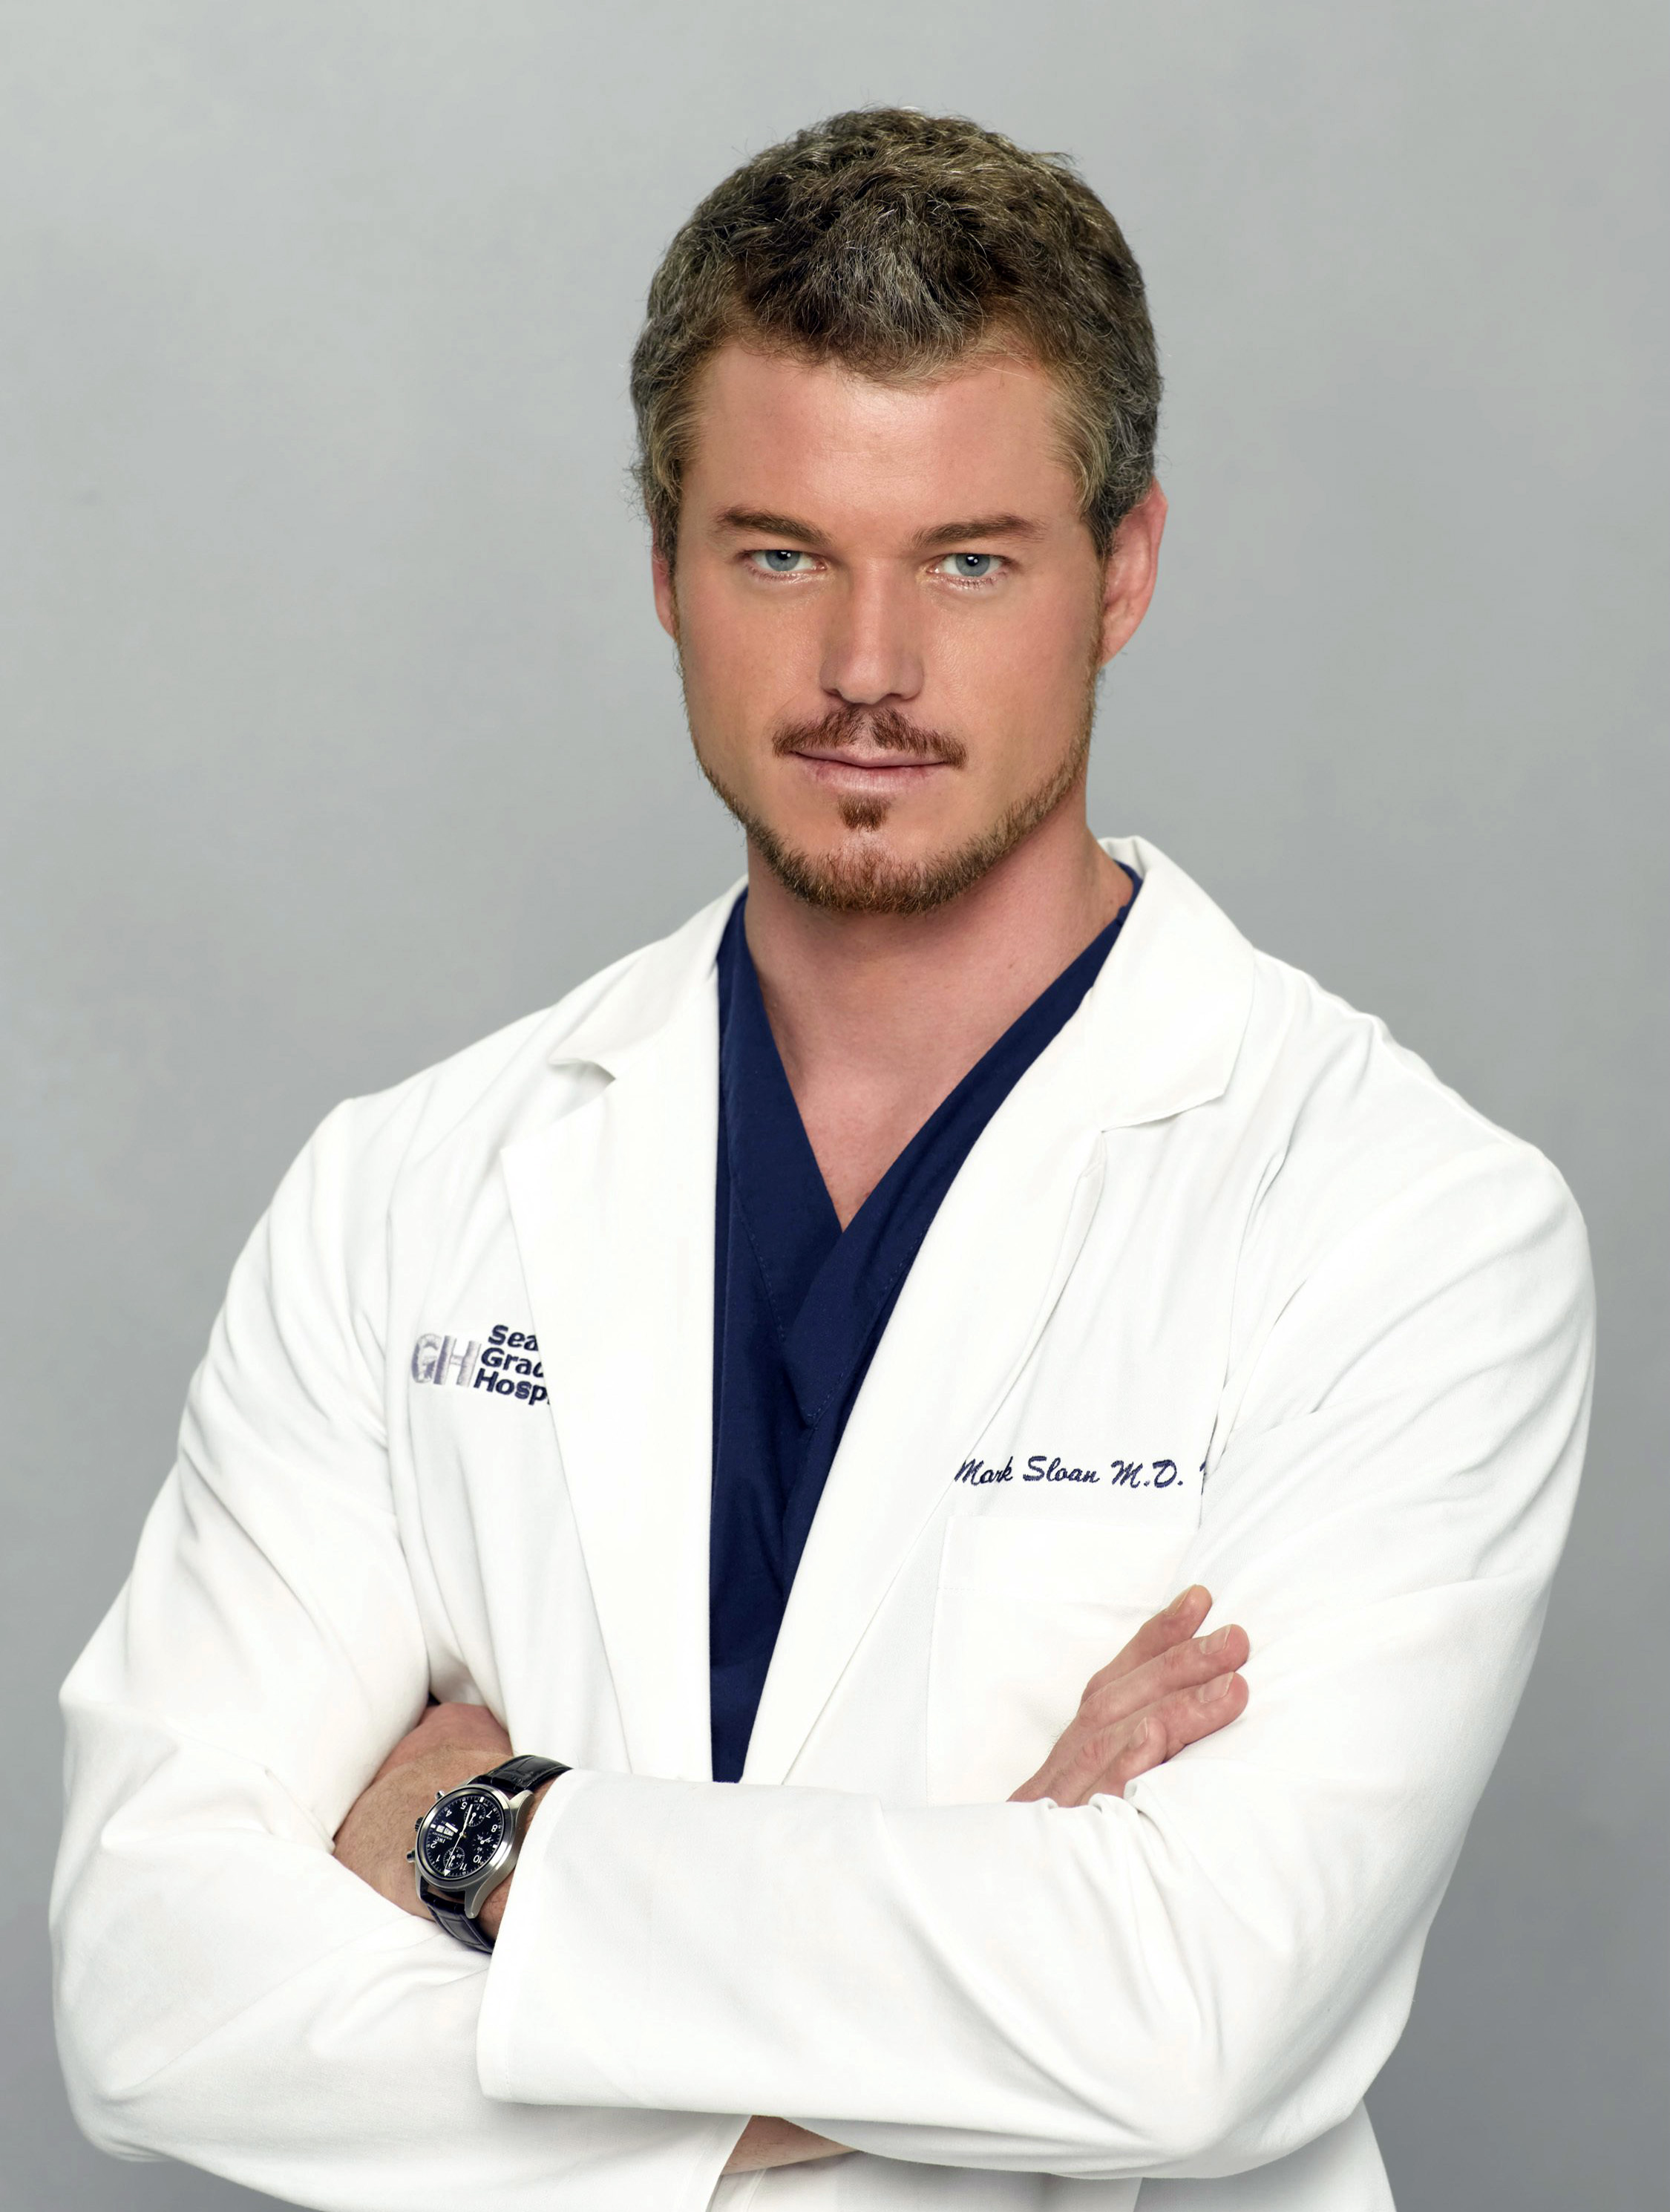 Greys Anatomy S04 Eric Dane 1 Dvdbash Dvdbash